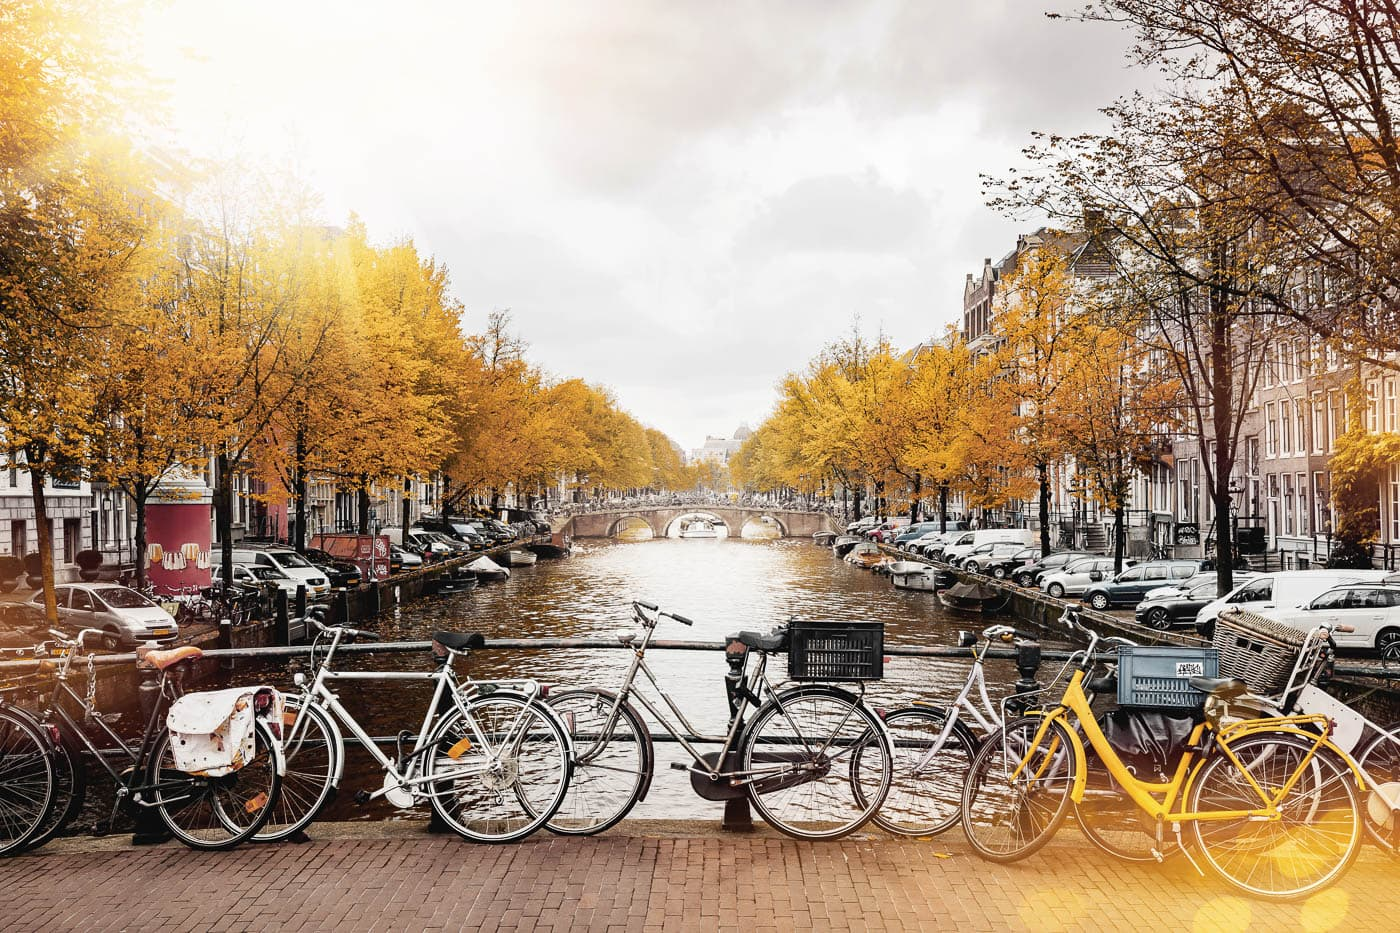 Amsterdam bikes in autumn colors